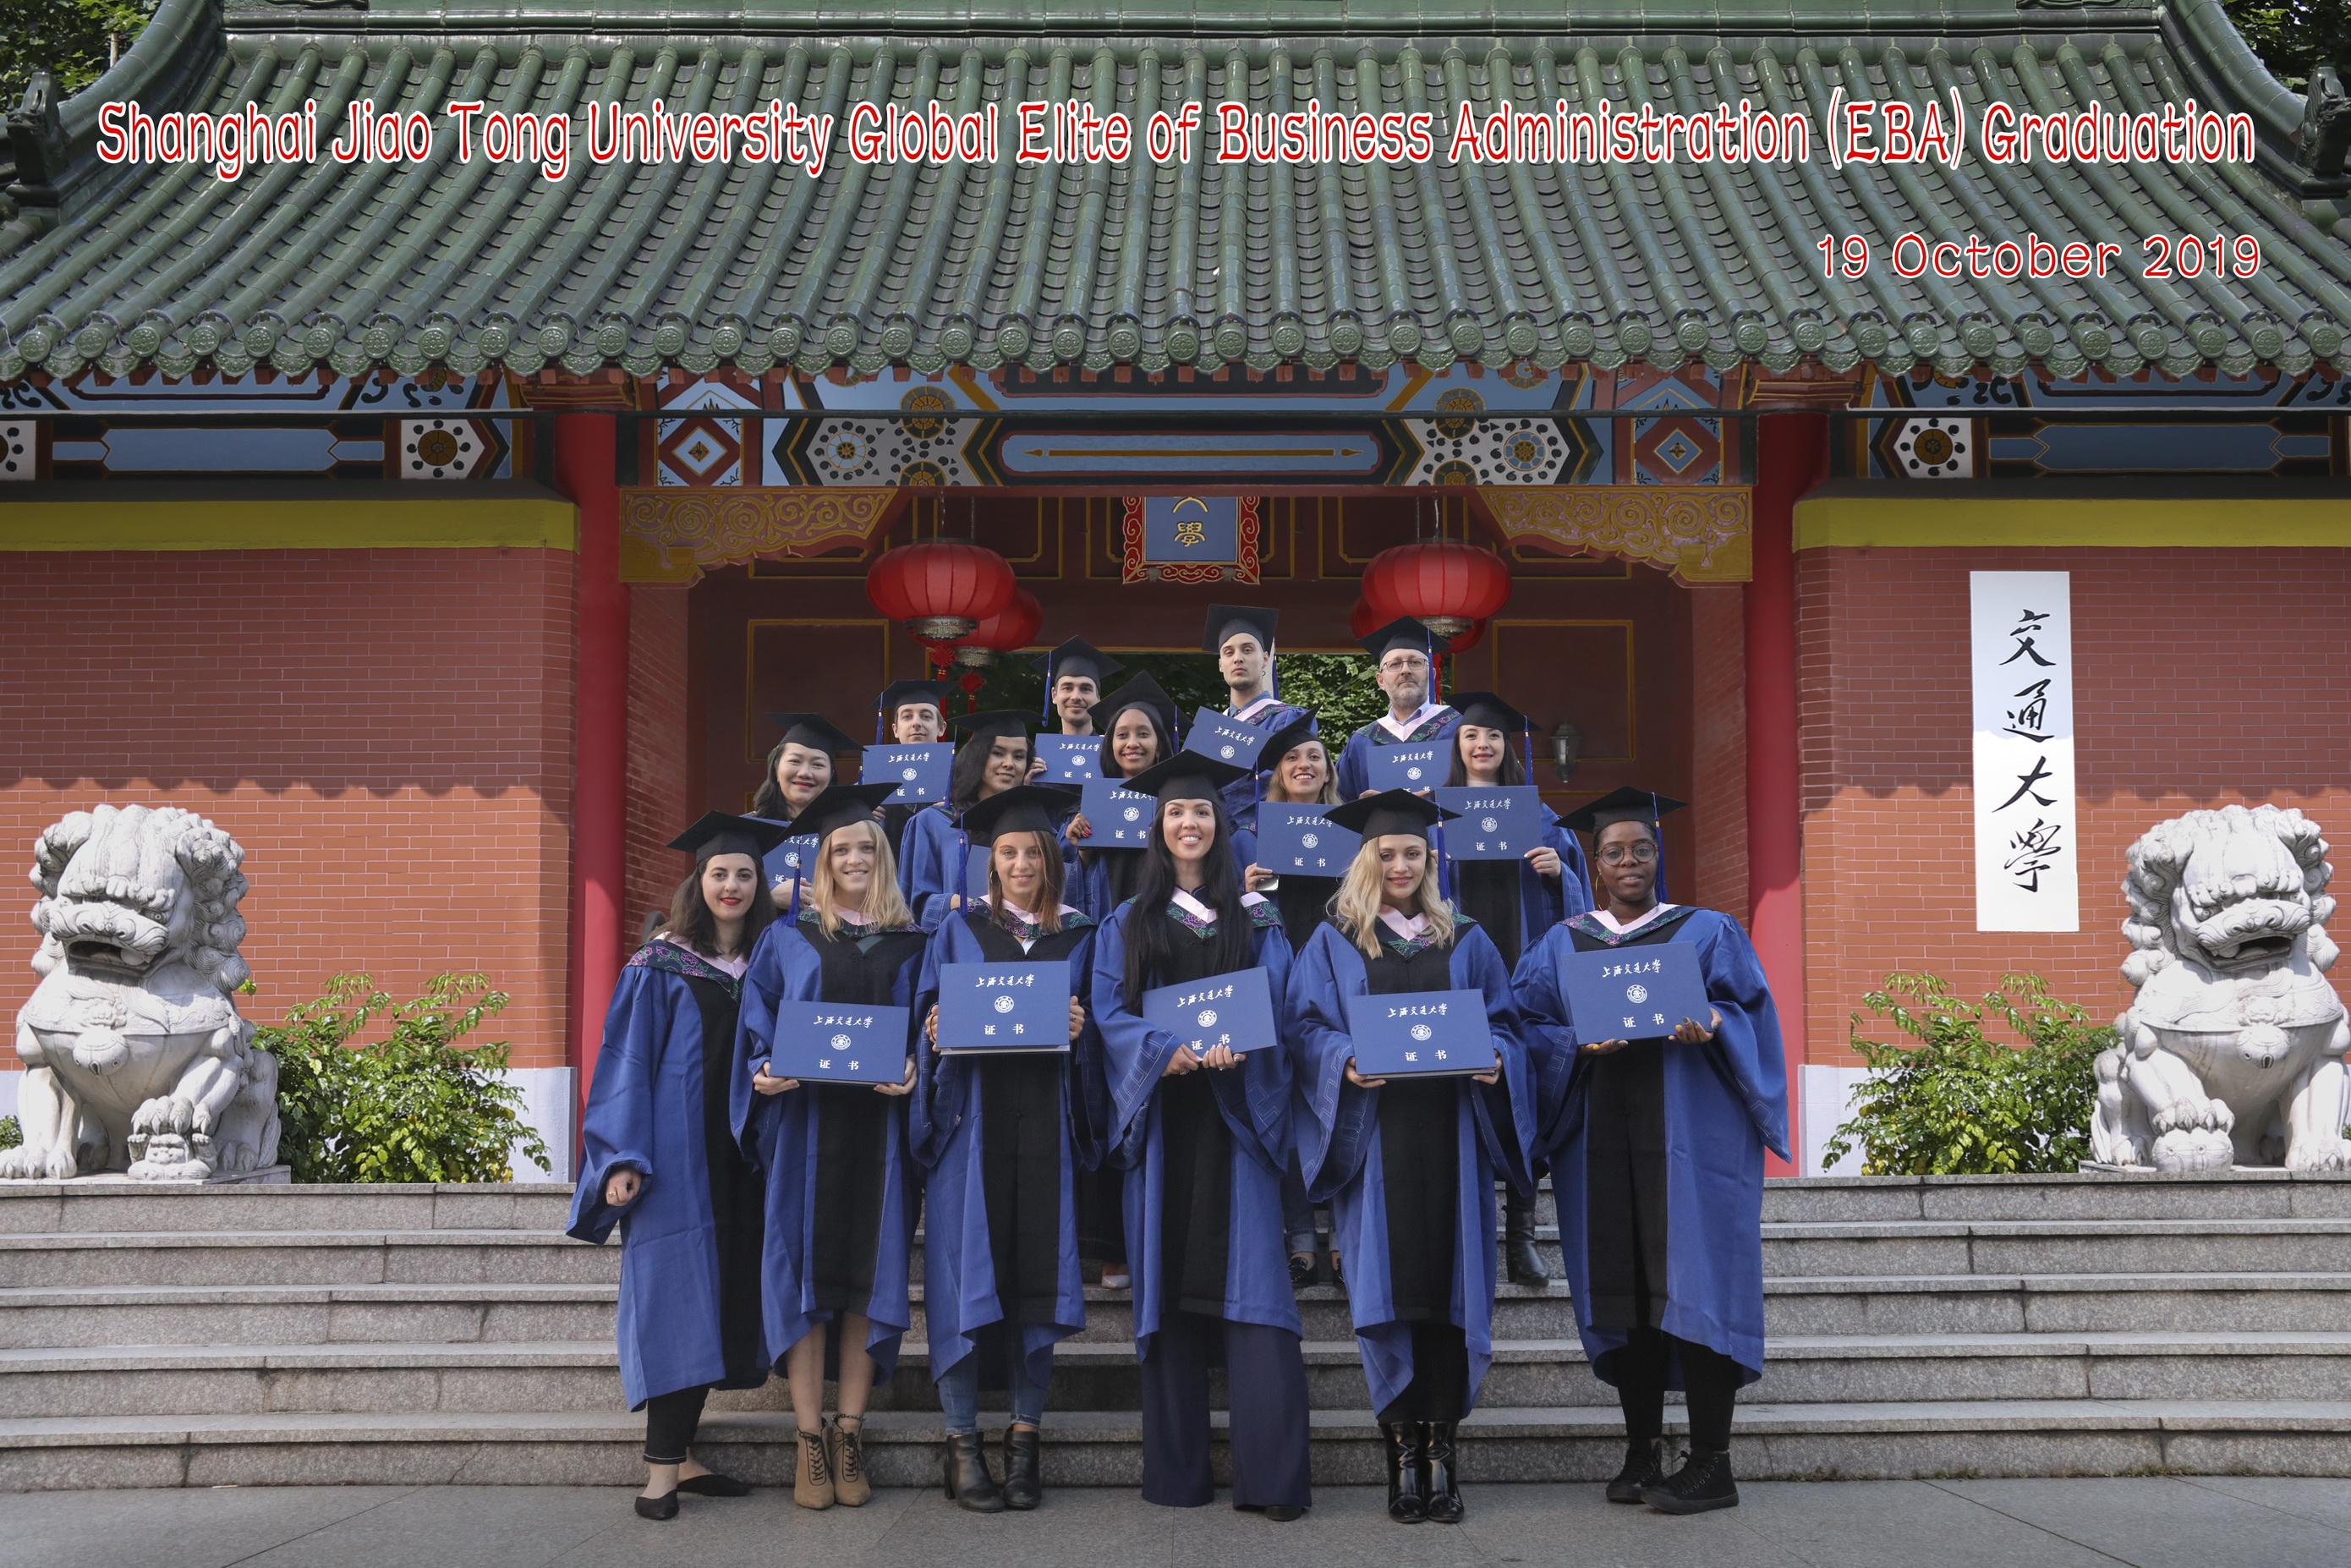 Shanghai Jiaotong University Global EBA